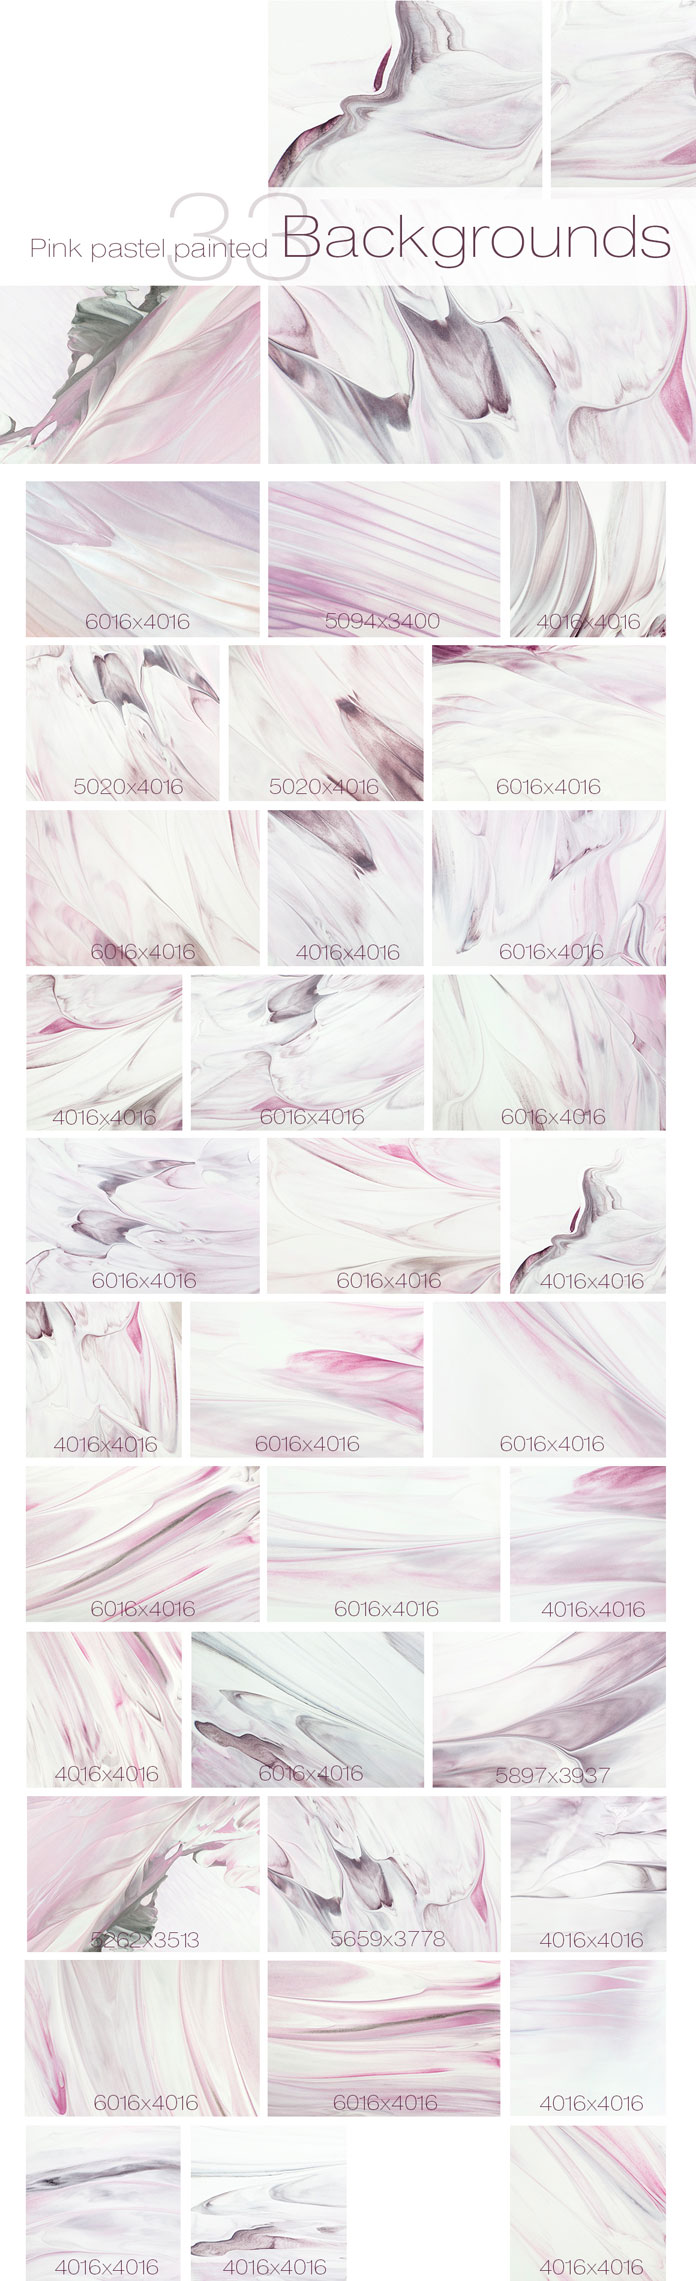 33 pastel painted backgrounds.